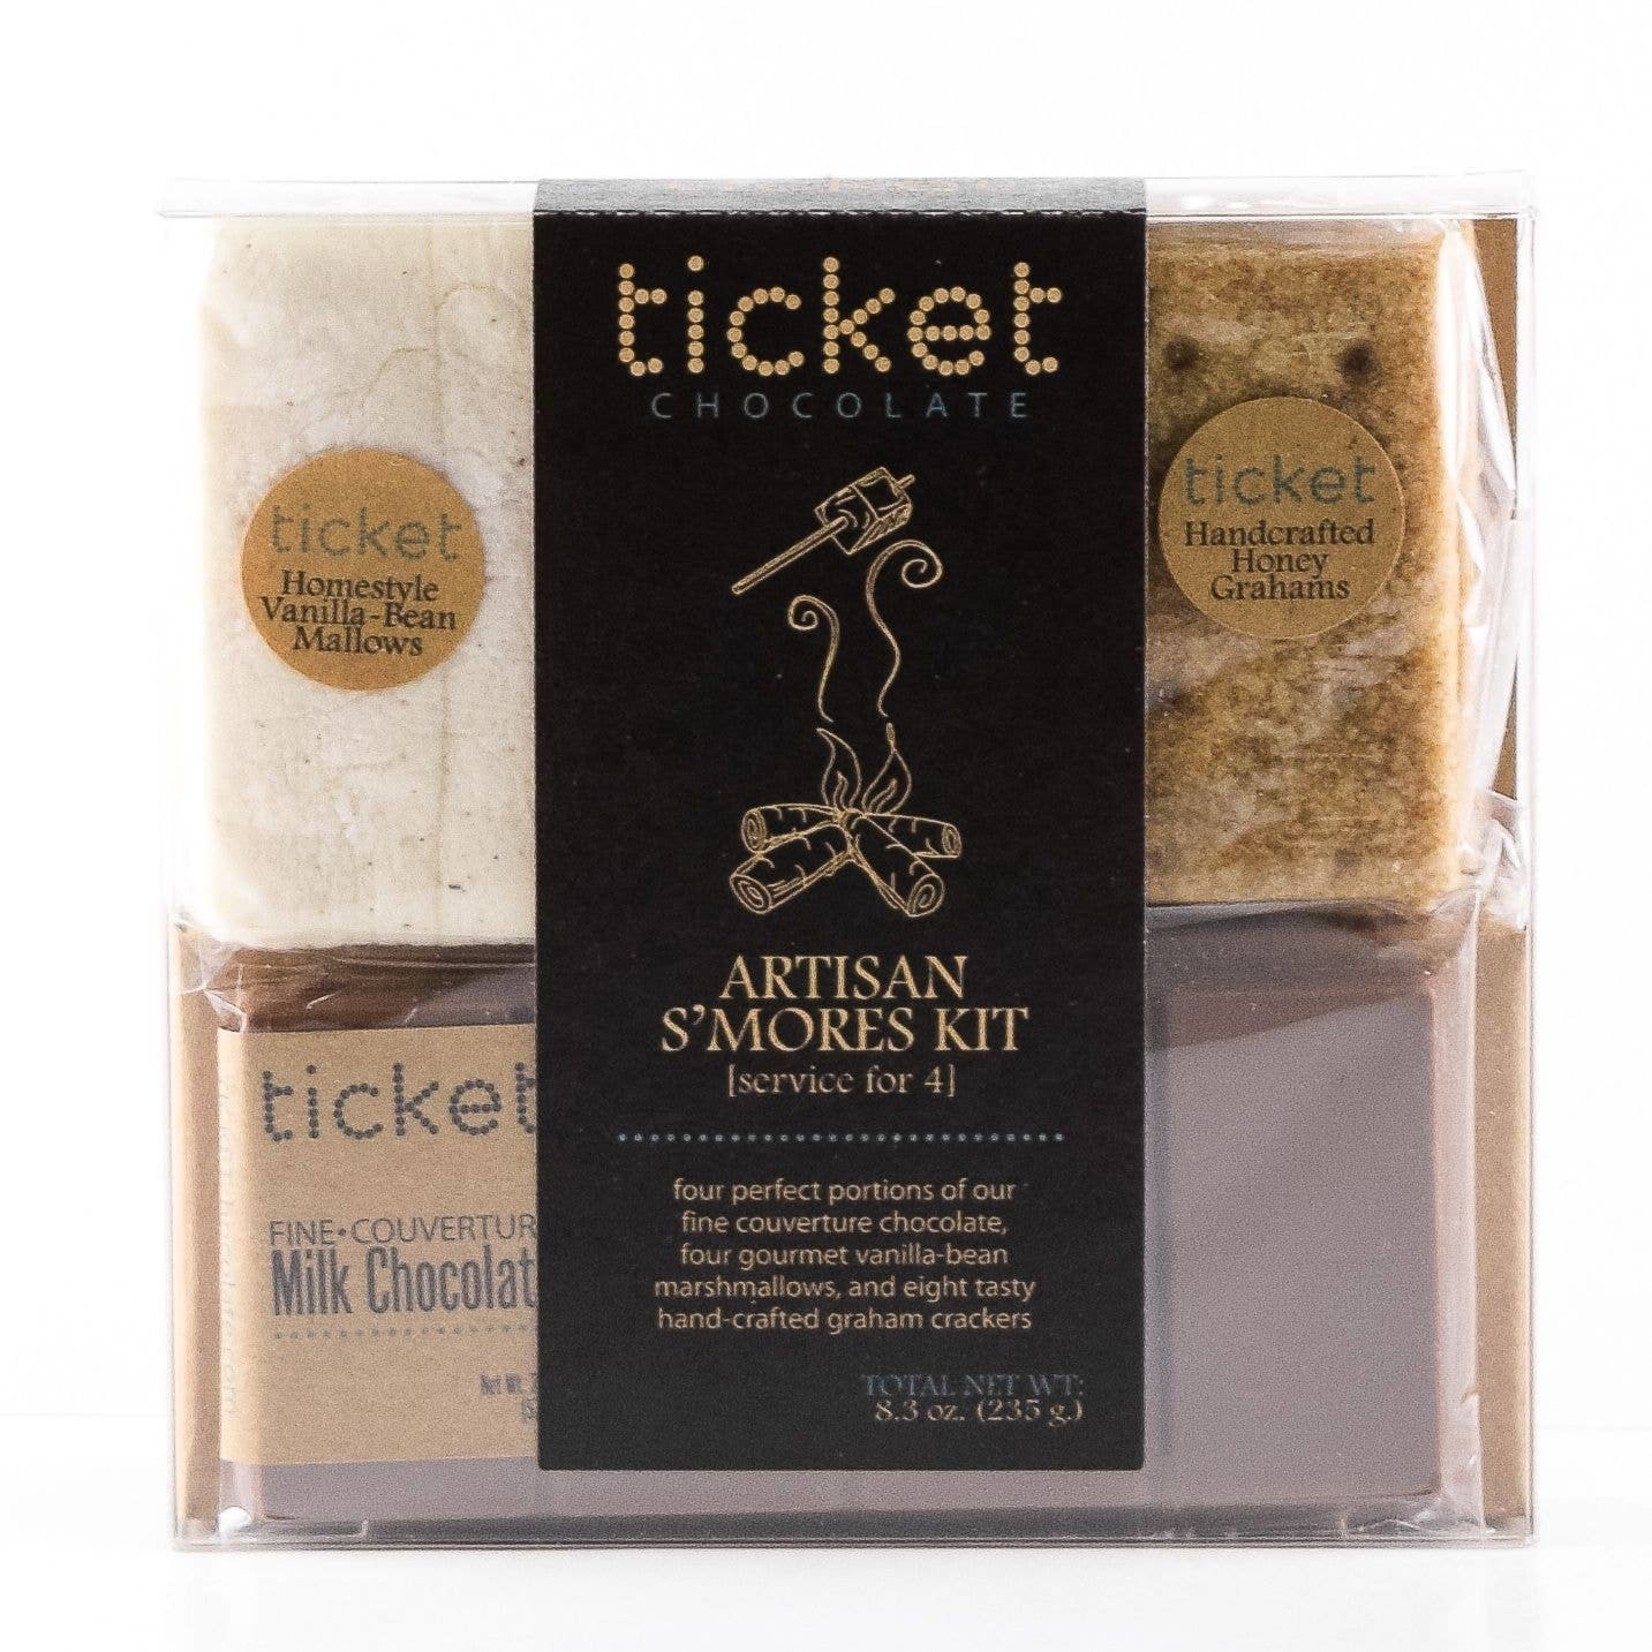 Ticket Chocolate Ticket Chocolate Artisan Smores Kits Service for Four Classic